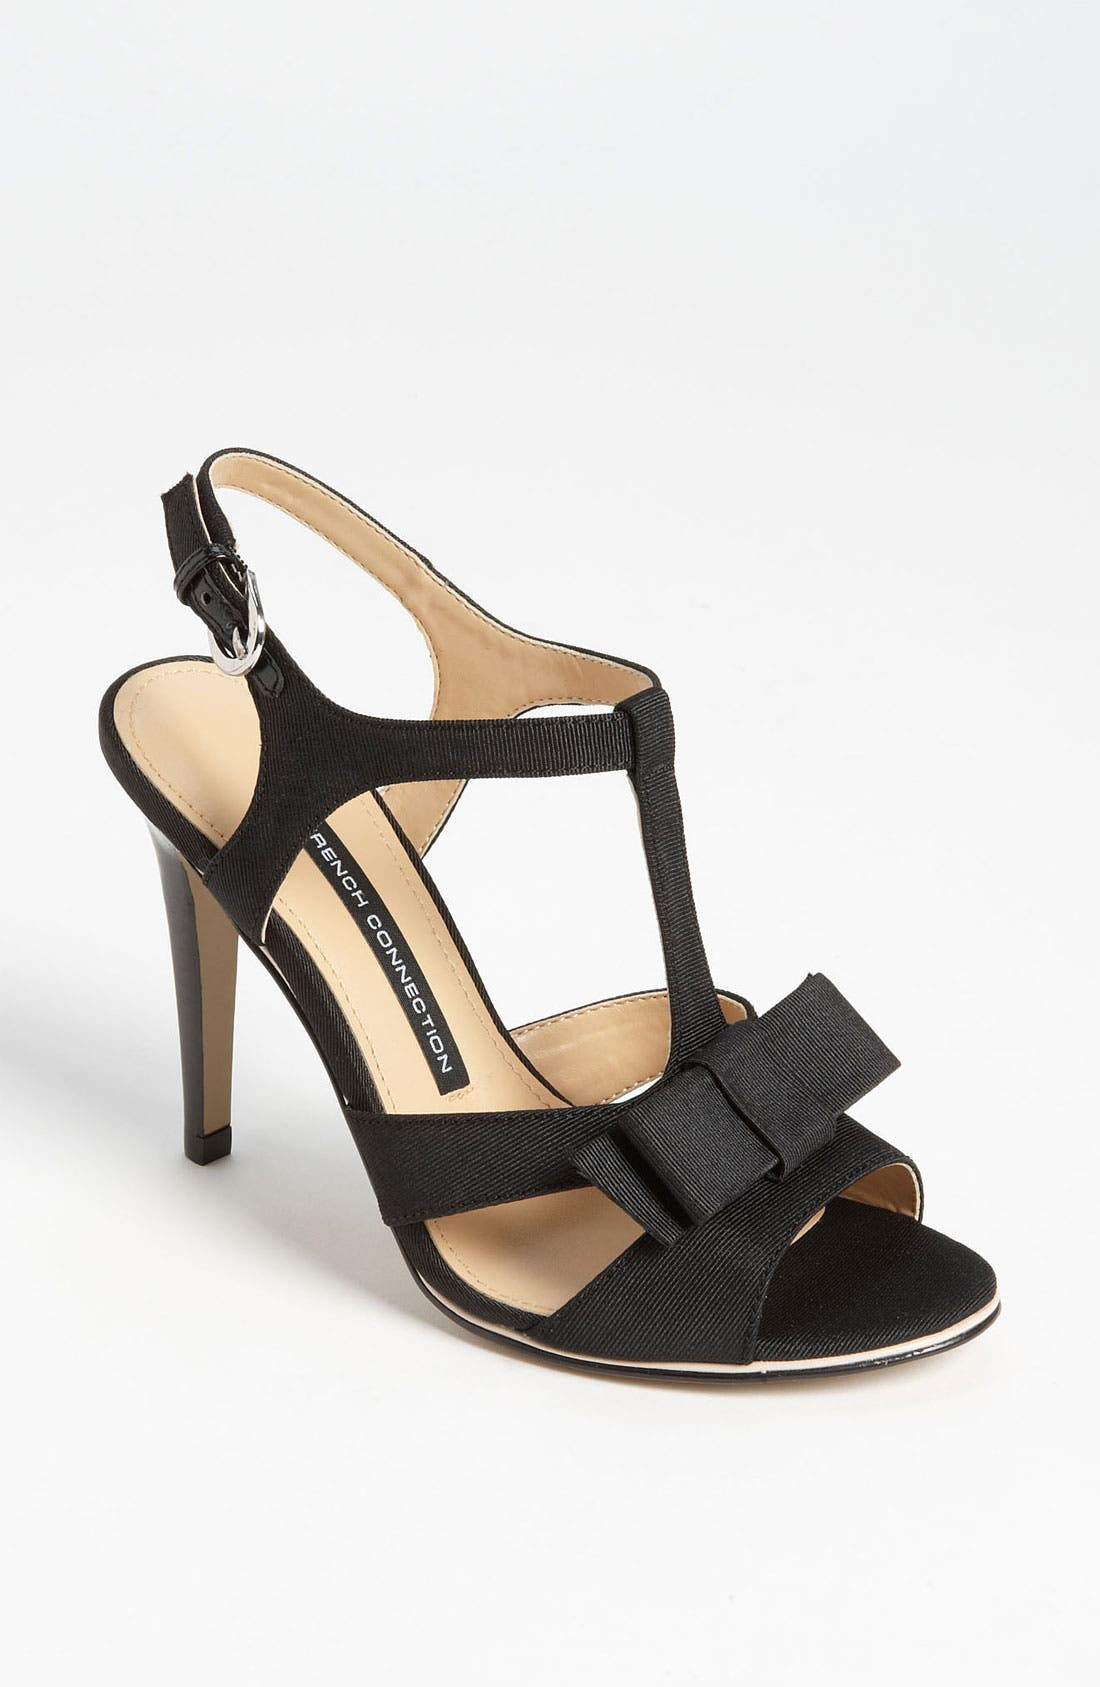 Main Image - French Connection 'Nora' Sandal